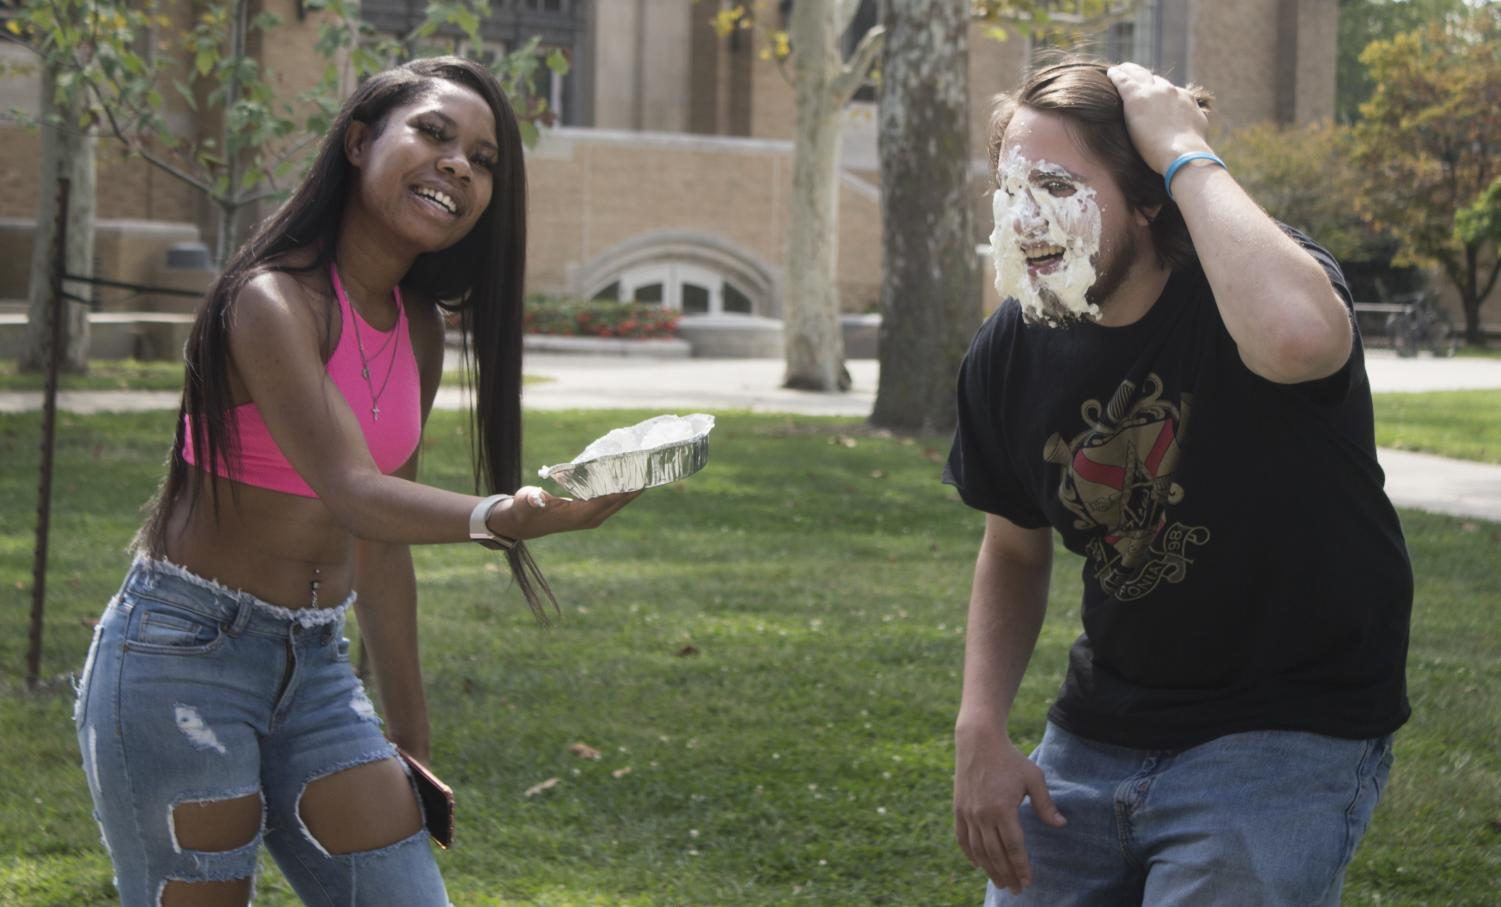 "Summer Jacobs | The Daily Eastern News ""How should I smack you?"" asked Armoni King, a sophmore bussiness and marketing major, before pushing a pie into Mikey Meyer's face, who is a transfer music education major, at the Library Quad on Tuesday afternoon."